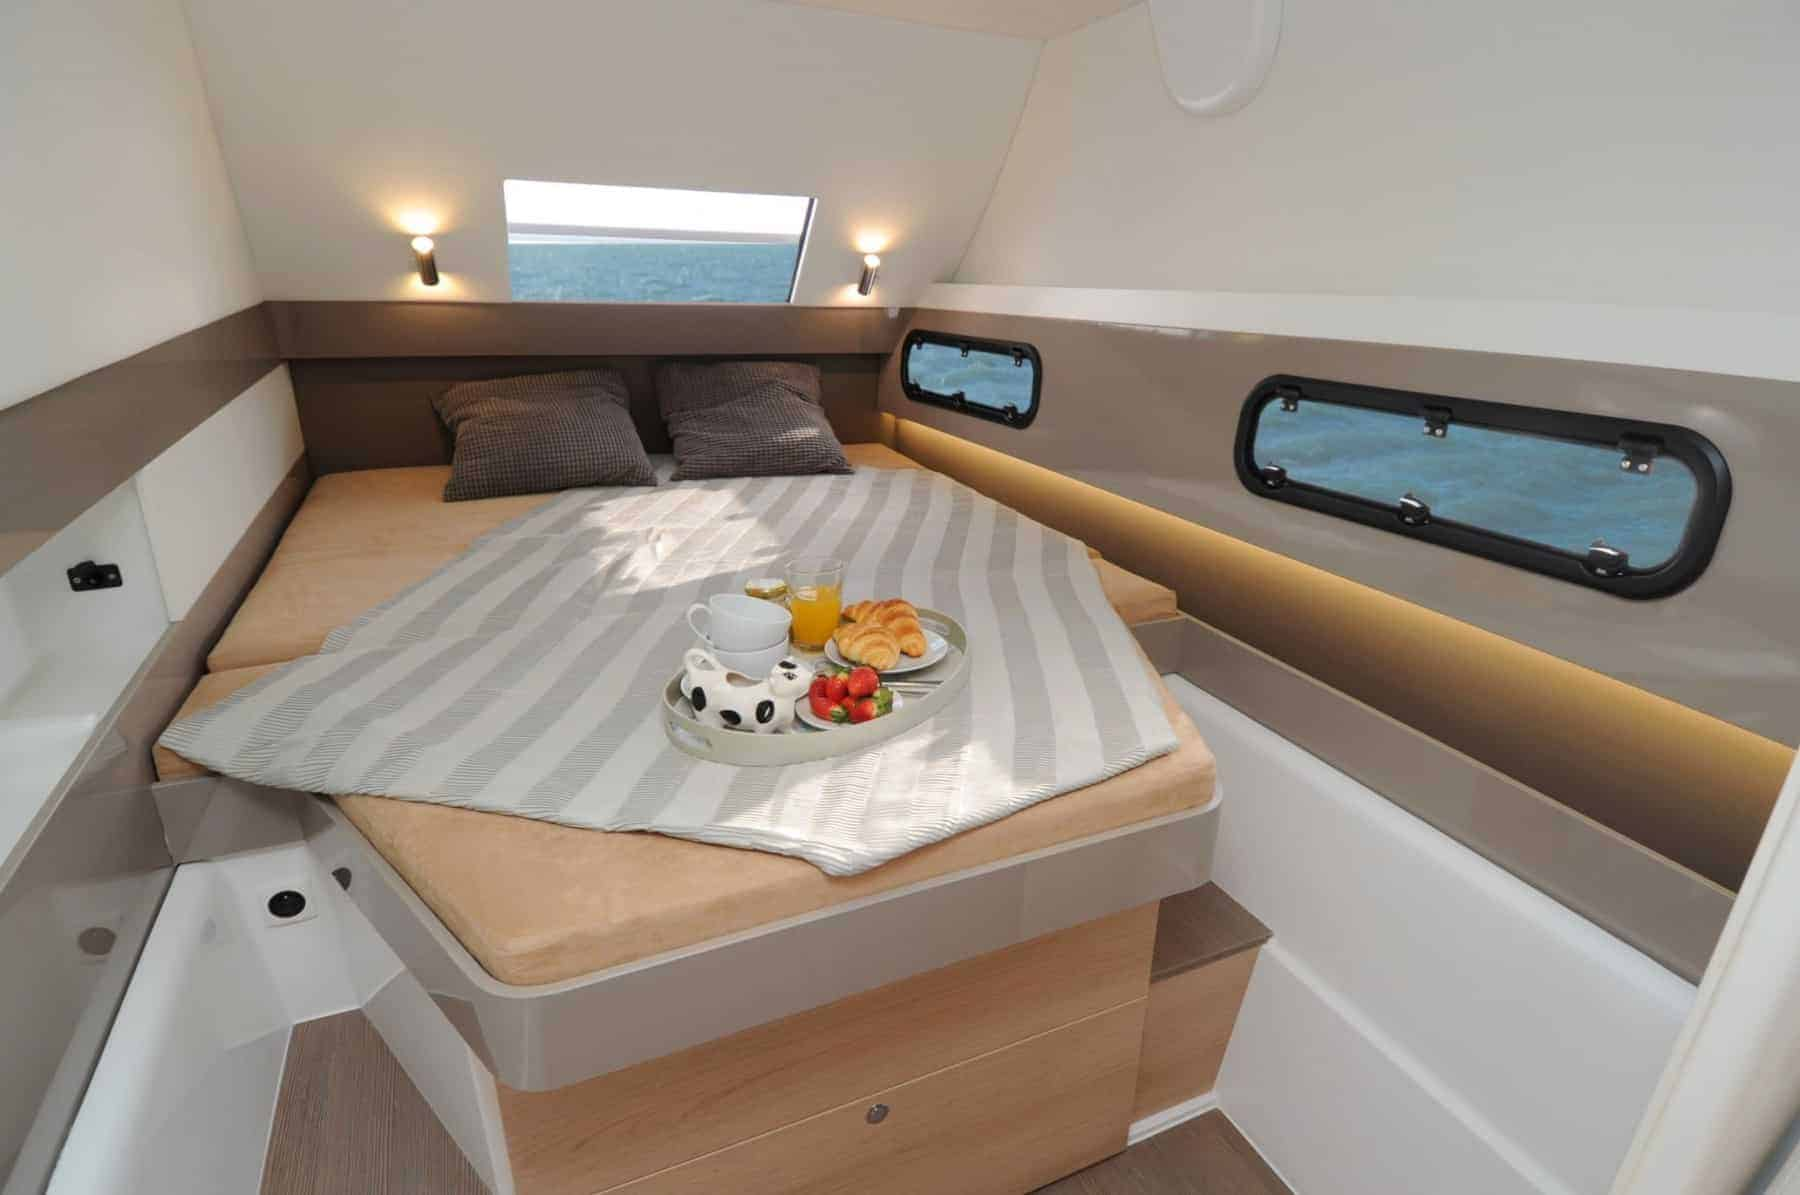 Made bed with breakfast on a plate on it in a Bali 4.1's cabin